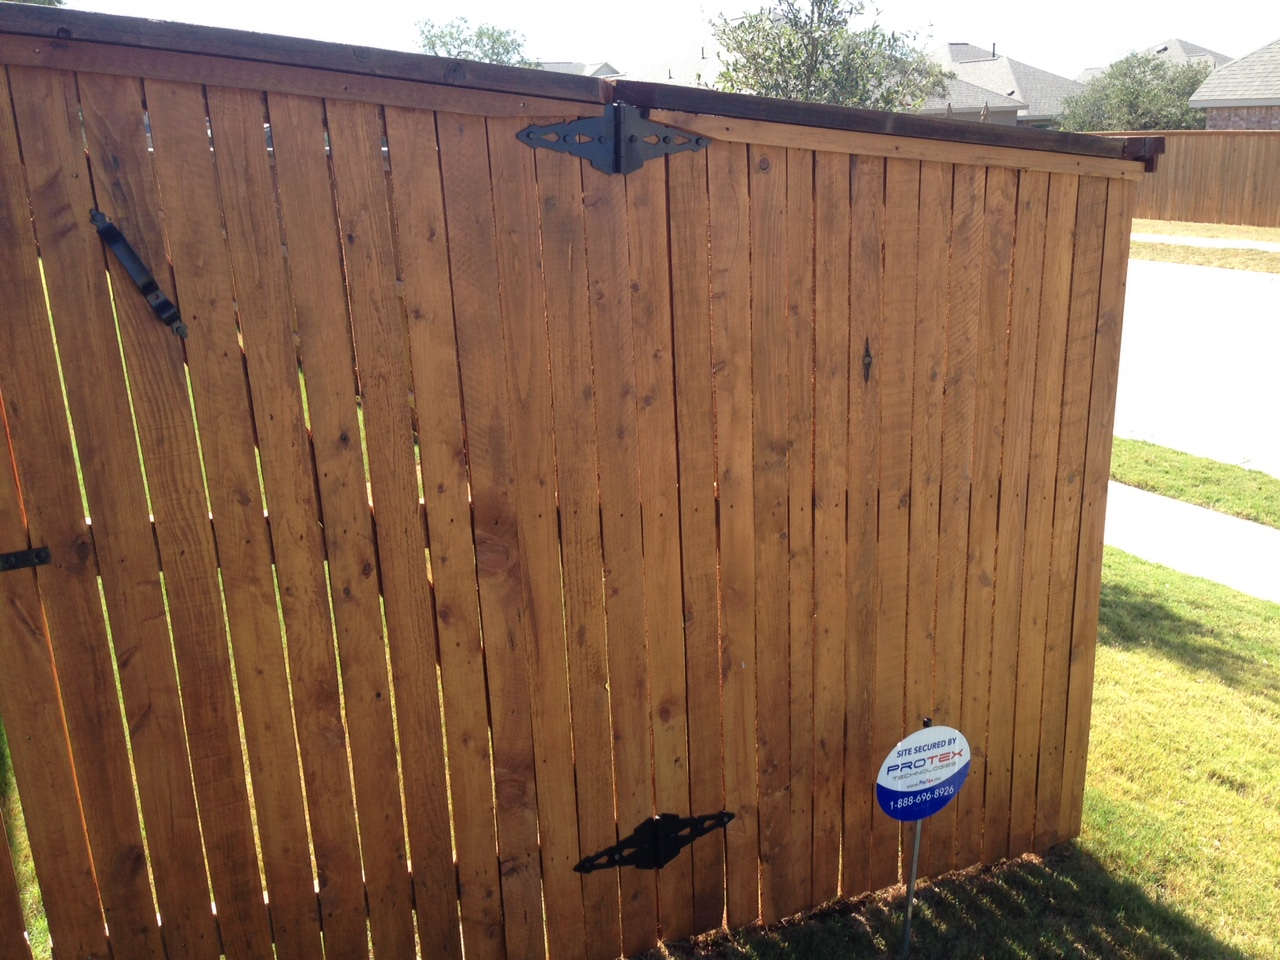 Fence with Toner application